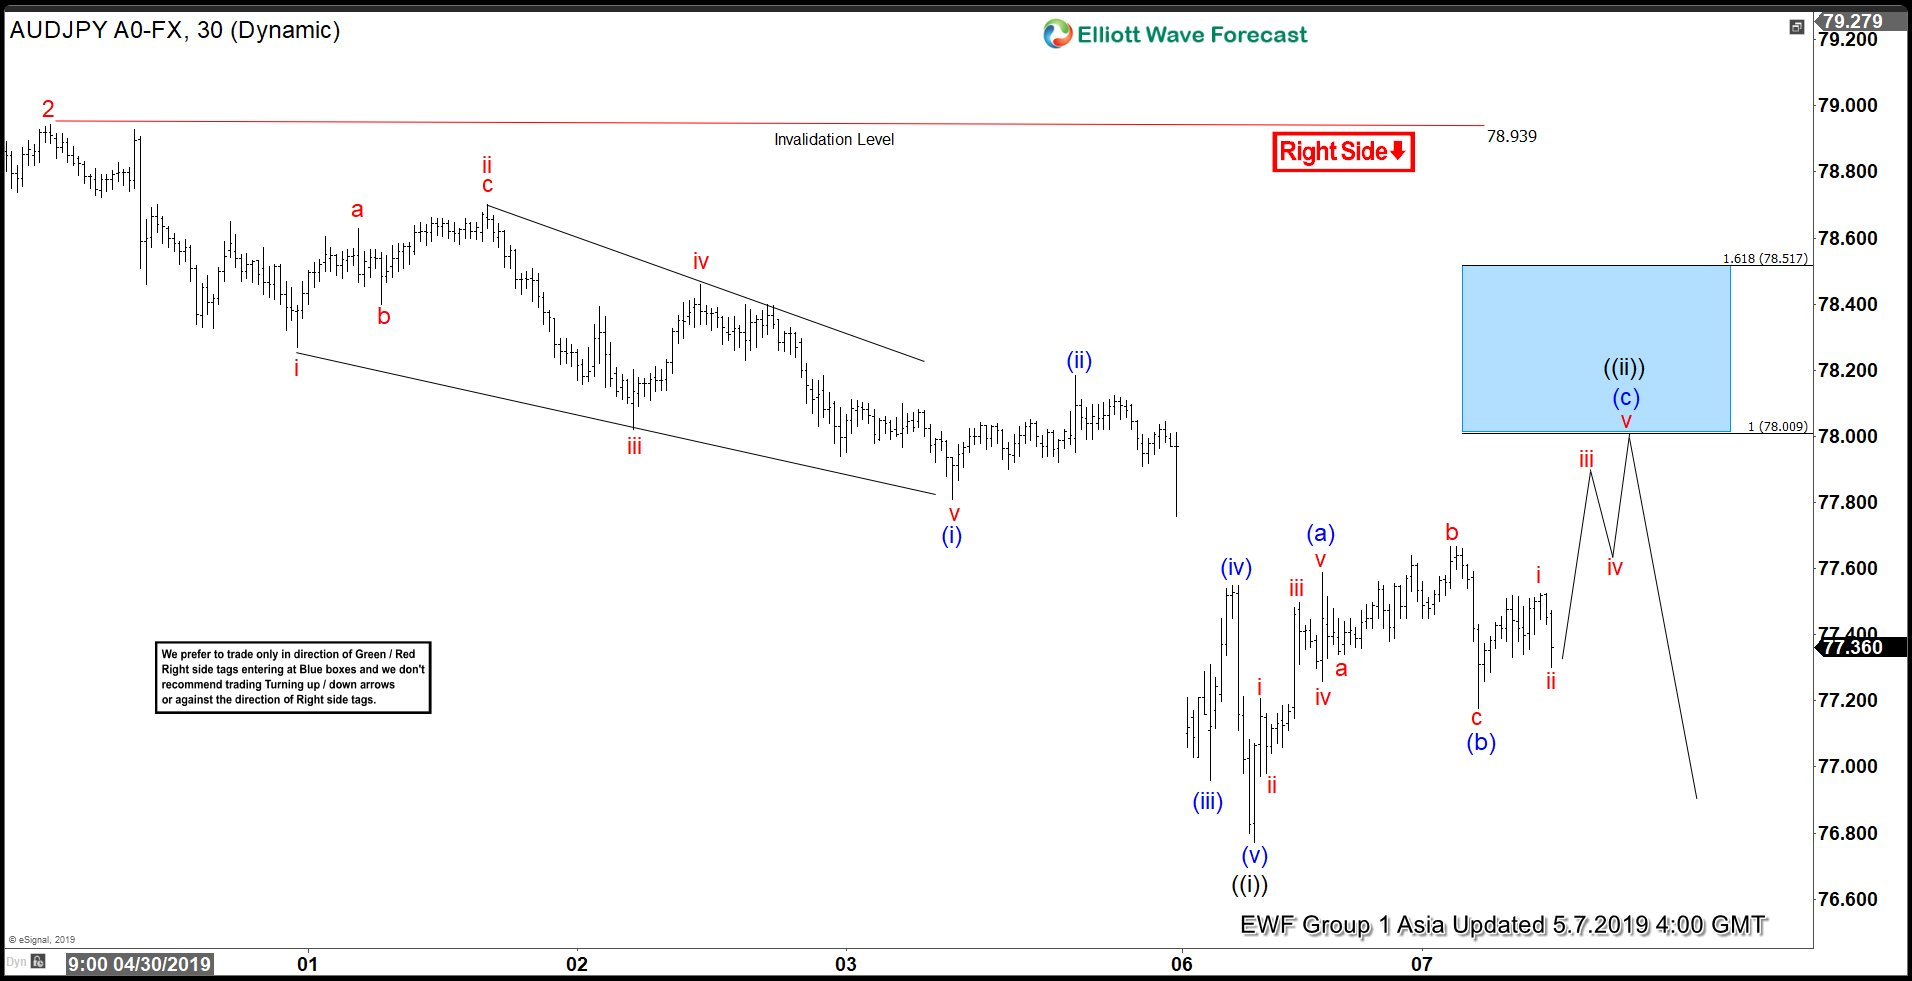 Elliott Wave View Expecting AUDJPY to Extend Lower